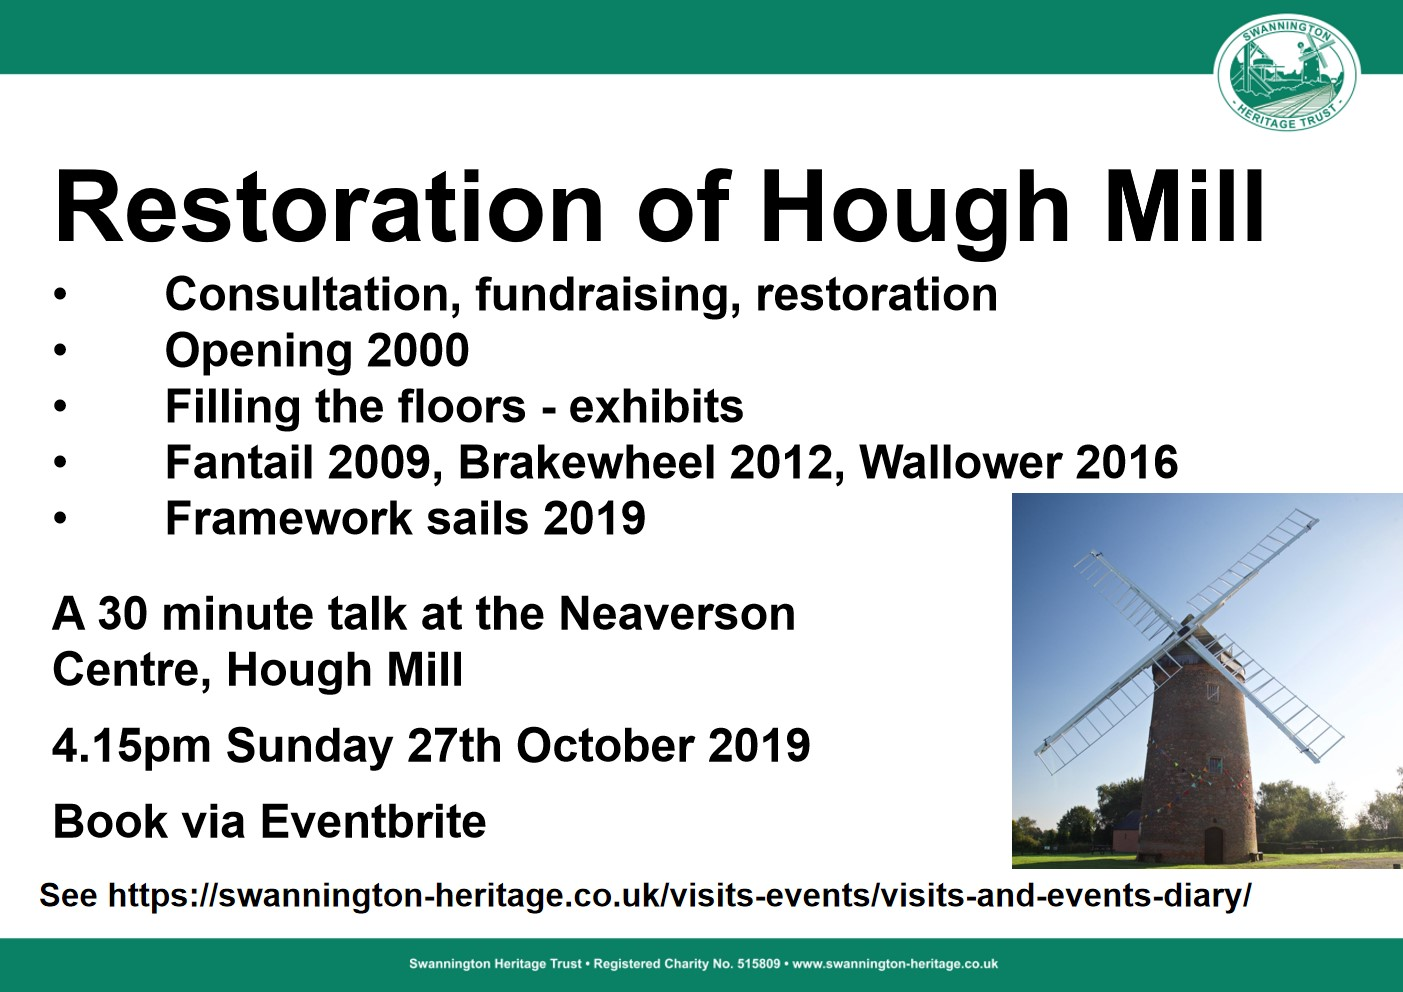 The 25 year restoration of Hough Mill